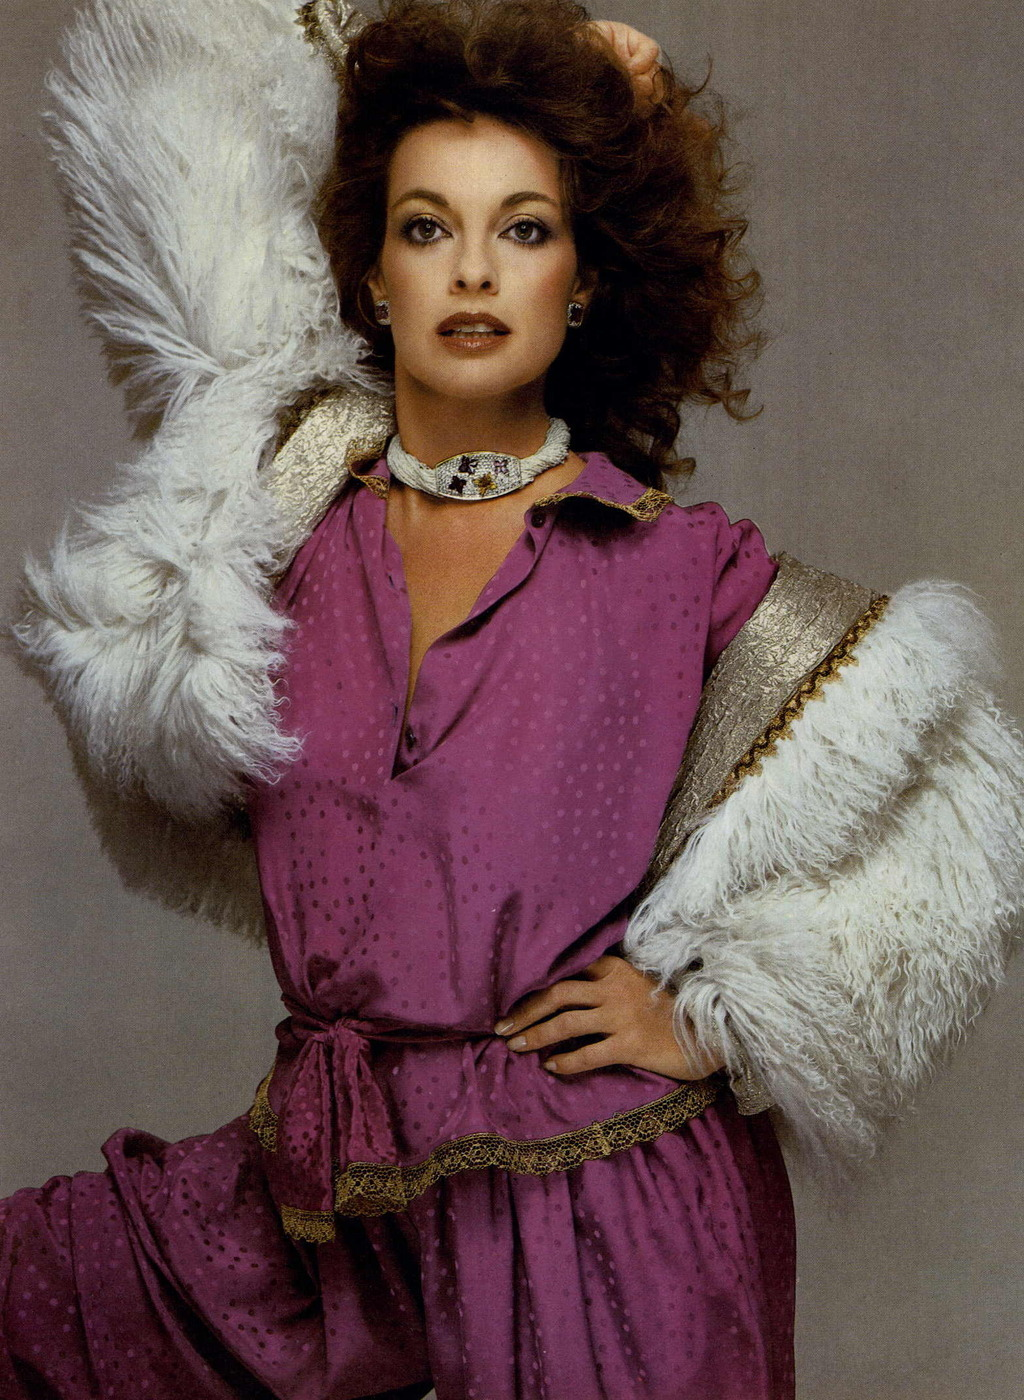 RICHARD AVEDON LINDA GREY VOGUE US NOVEMBER 1981 1